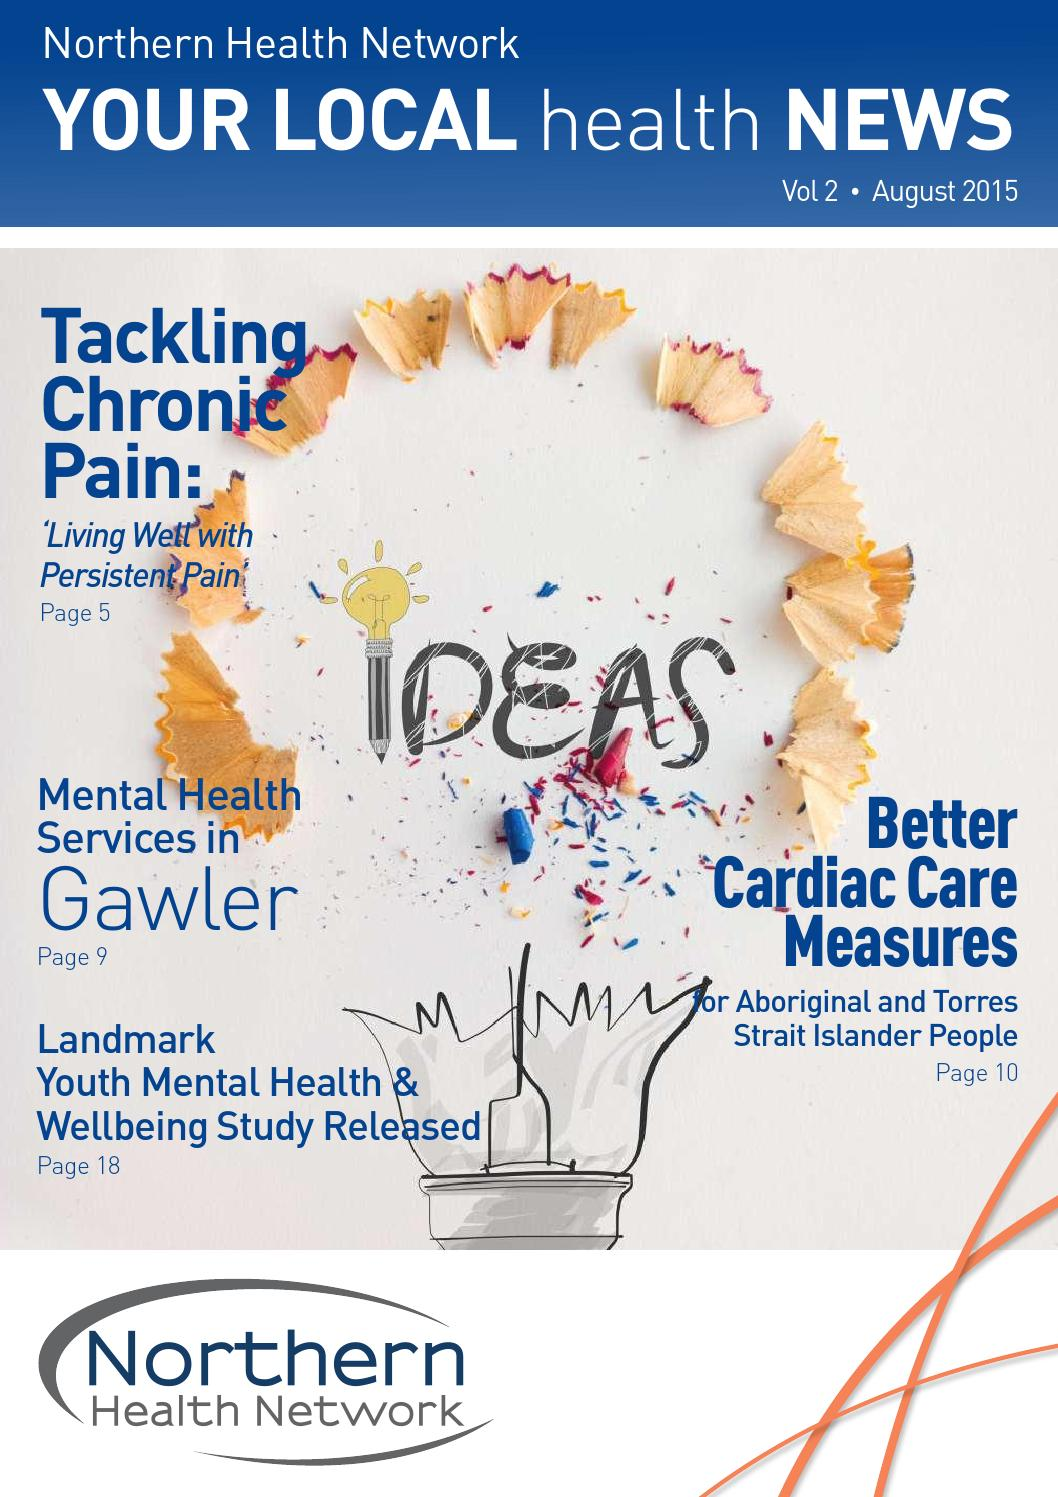 NHN Your Local Health News Vol 2 August 2015 by Sonder - issuu